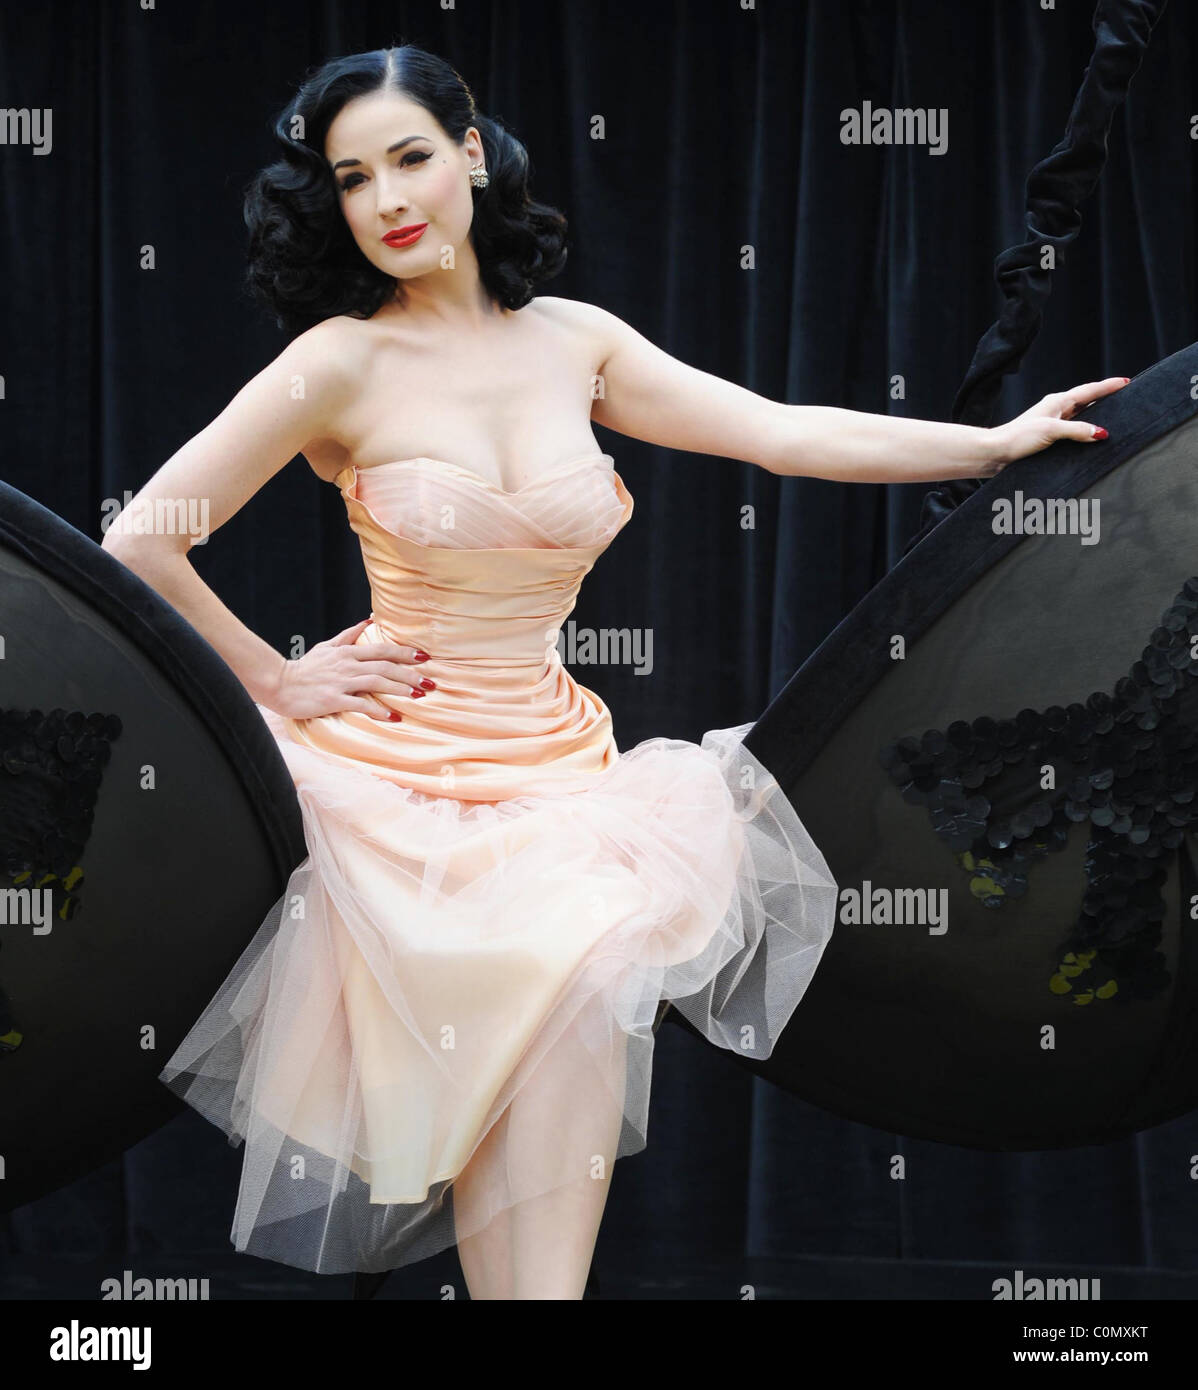 "Dita Von Teese dévoile sa nouvelle ""Wonderbra By Dita Von Teese"" collection à Covent Garden Photo Stock"